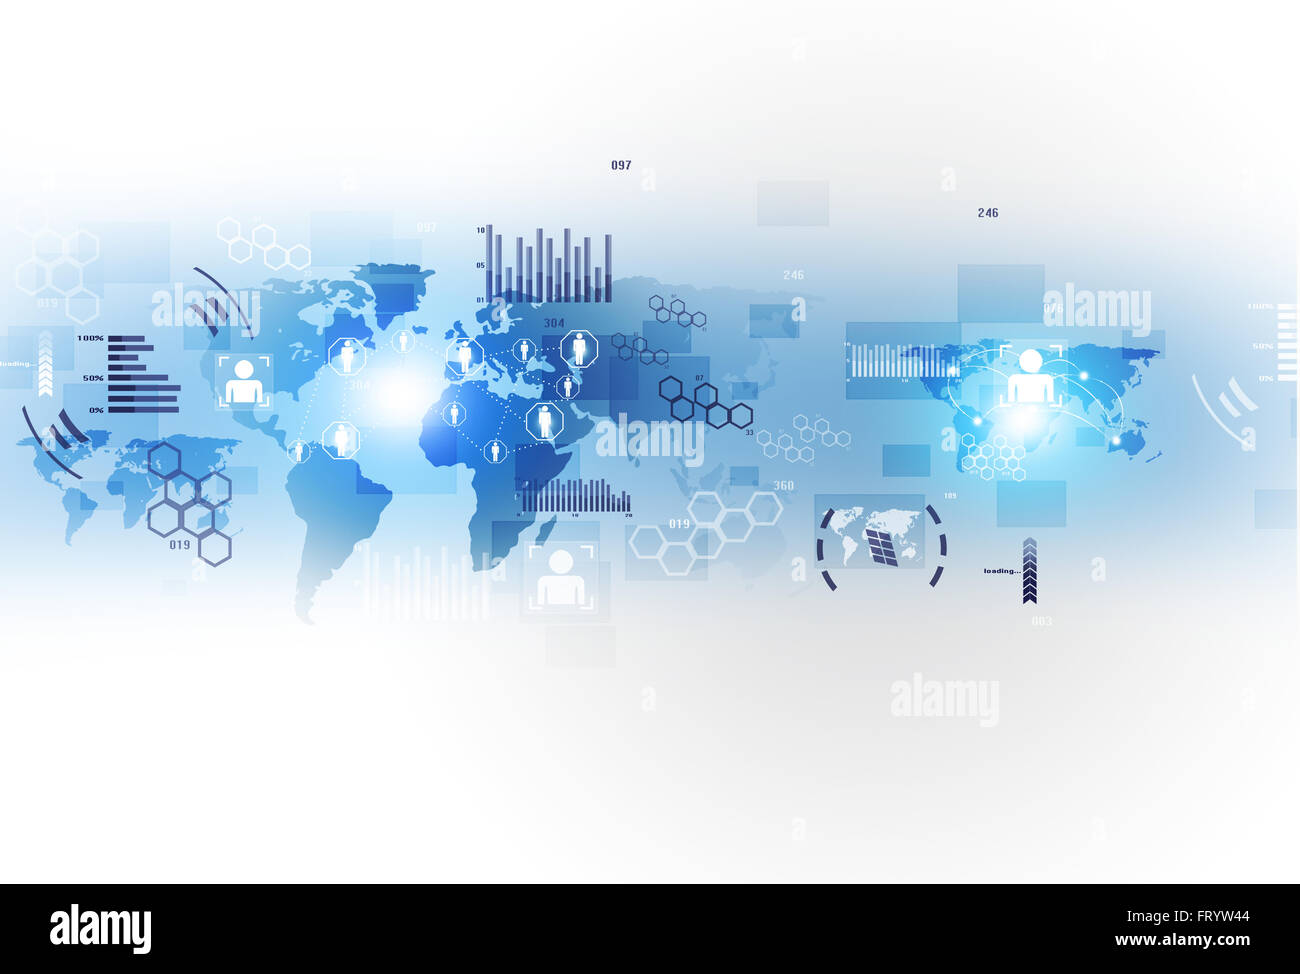 network concept global web connections technology interface - Stock Image